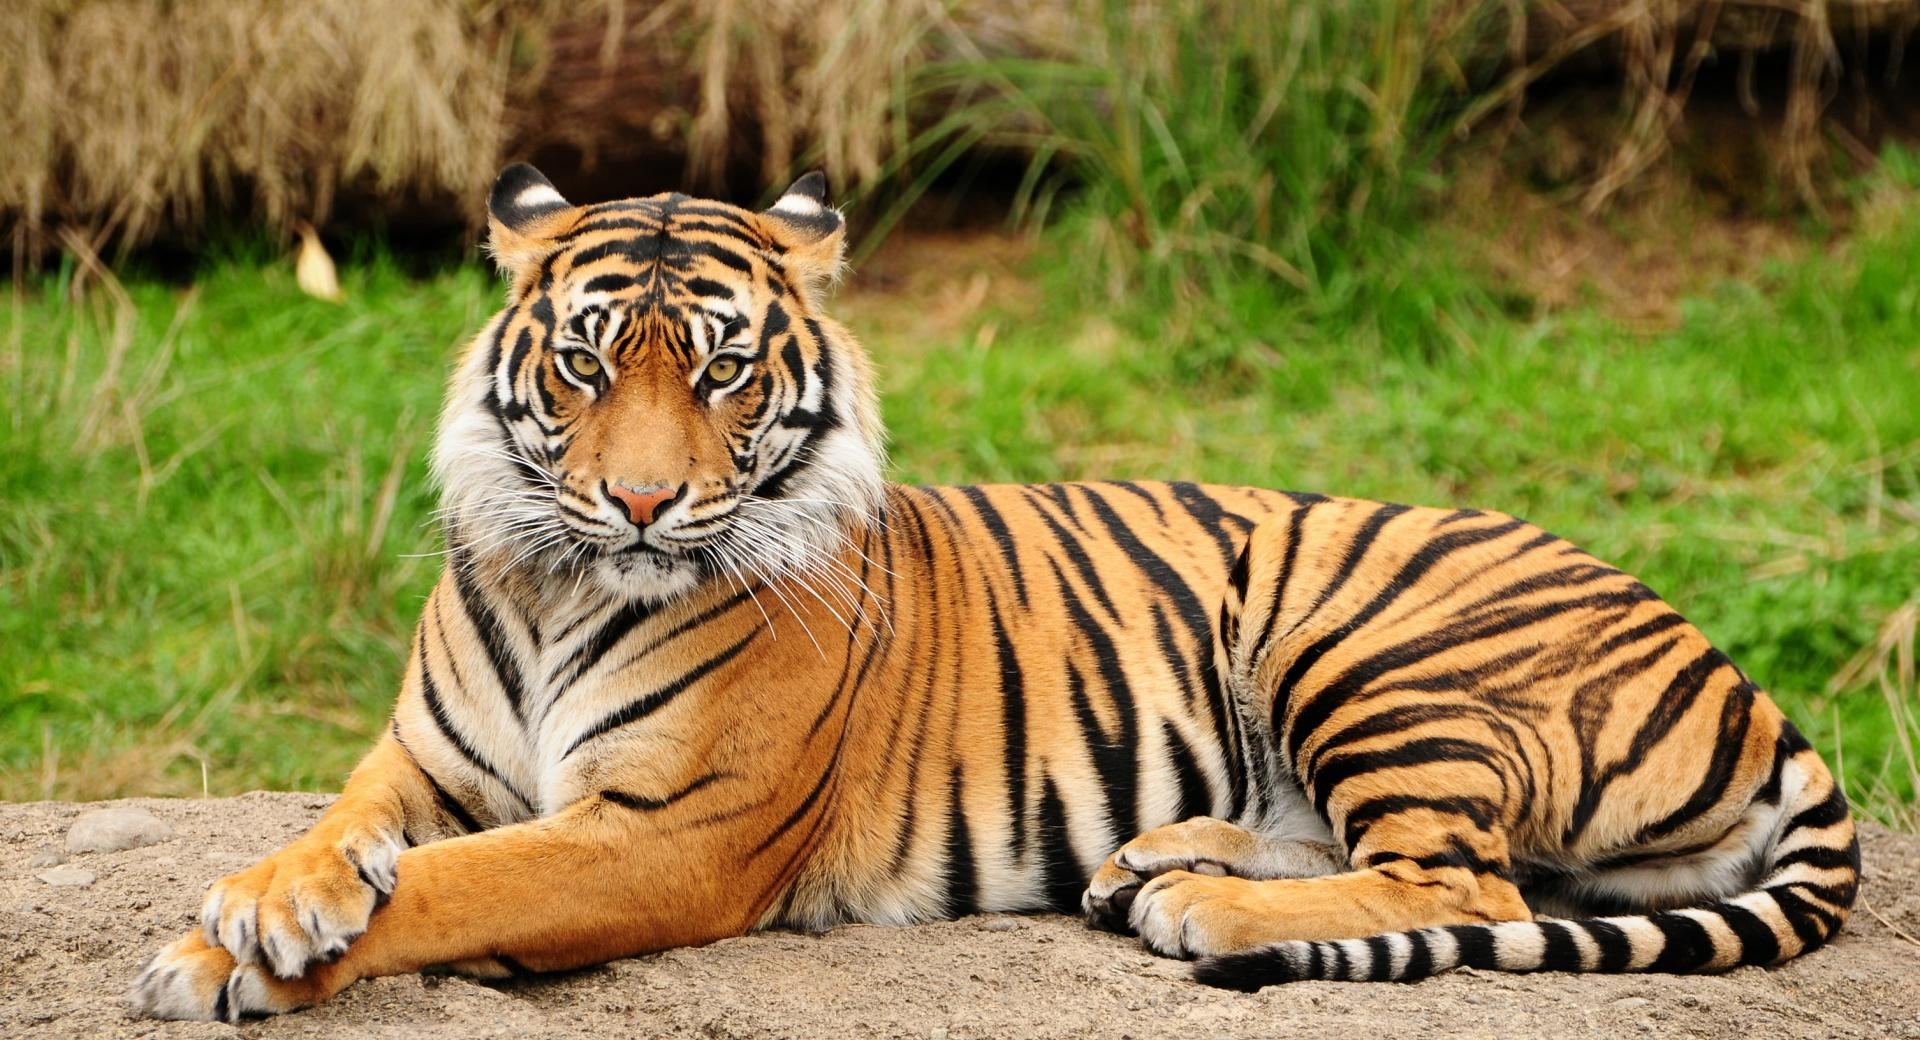 Tiger Sitting Majestic wallpapers HD quality